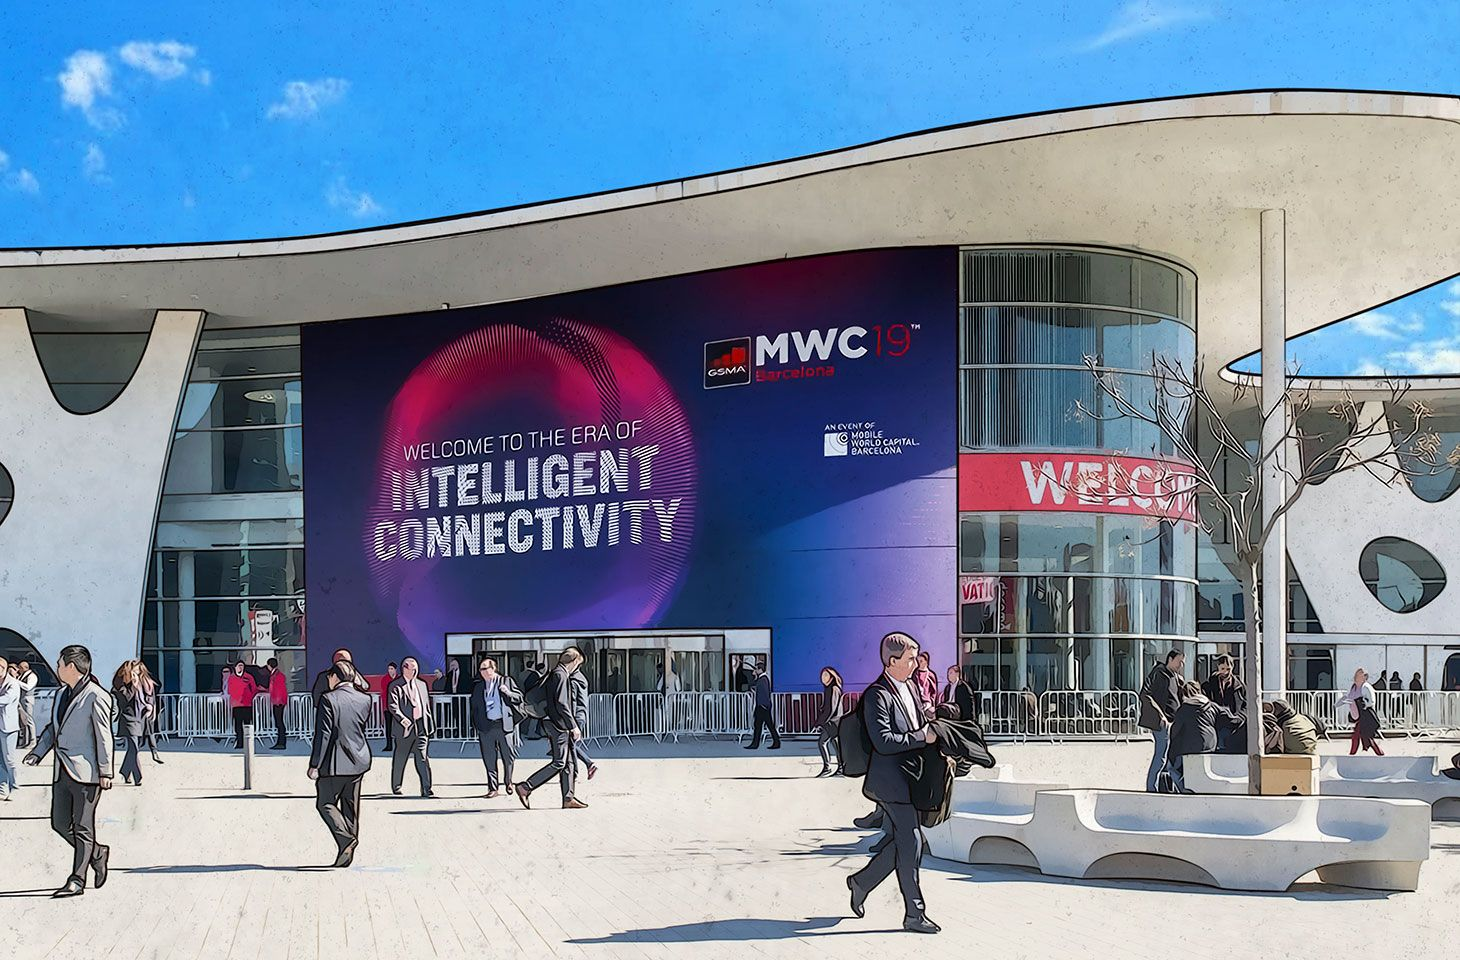 Mobile World Congress 2019 recapped: 5G, Internet of Things, ultrasonic fingerprint sensors, and artificial intelligence